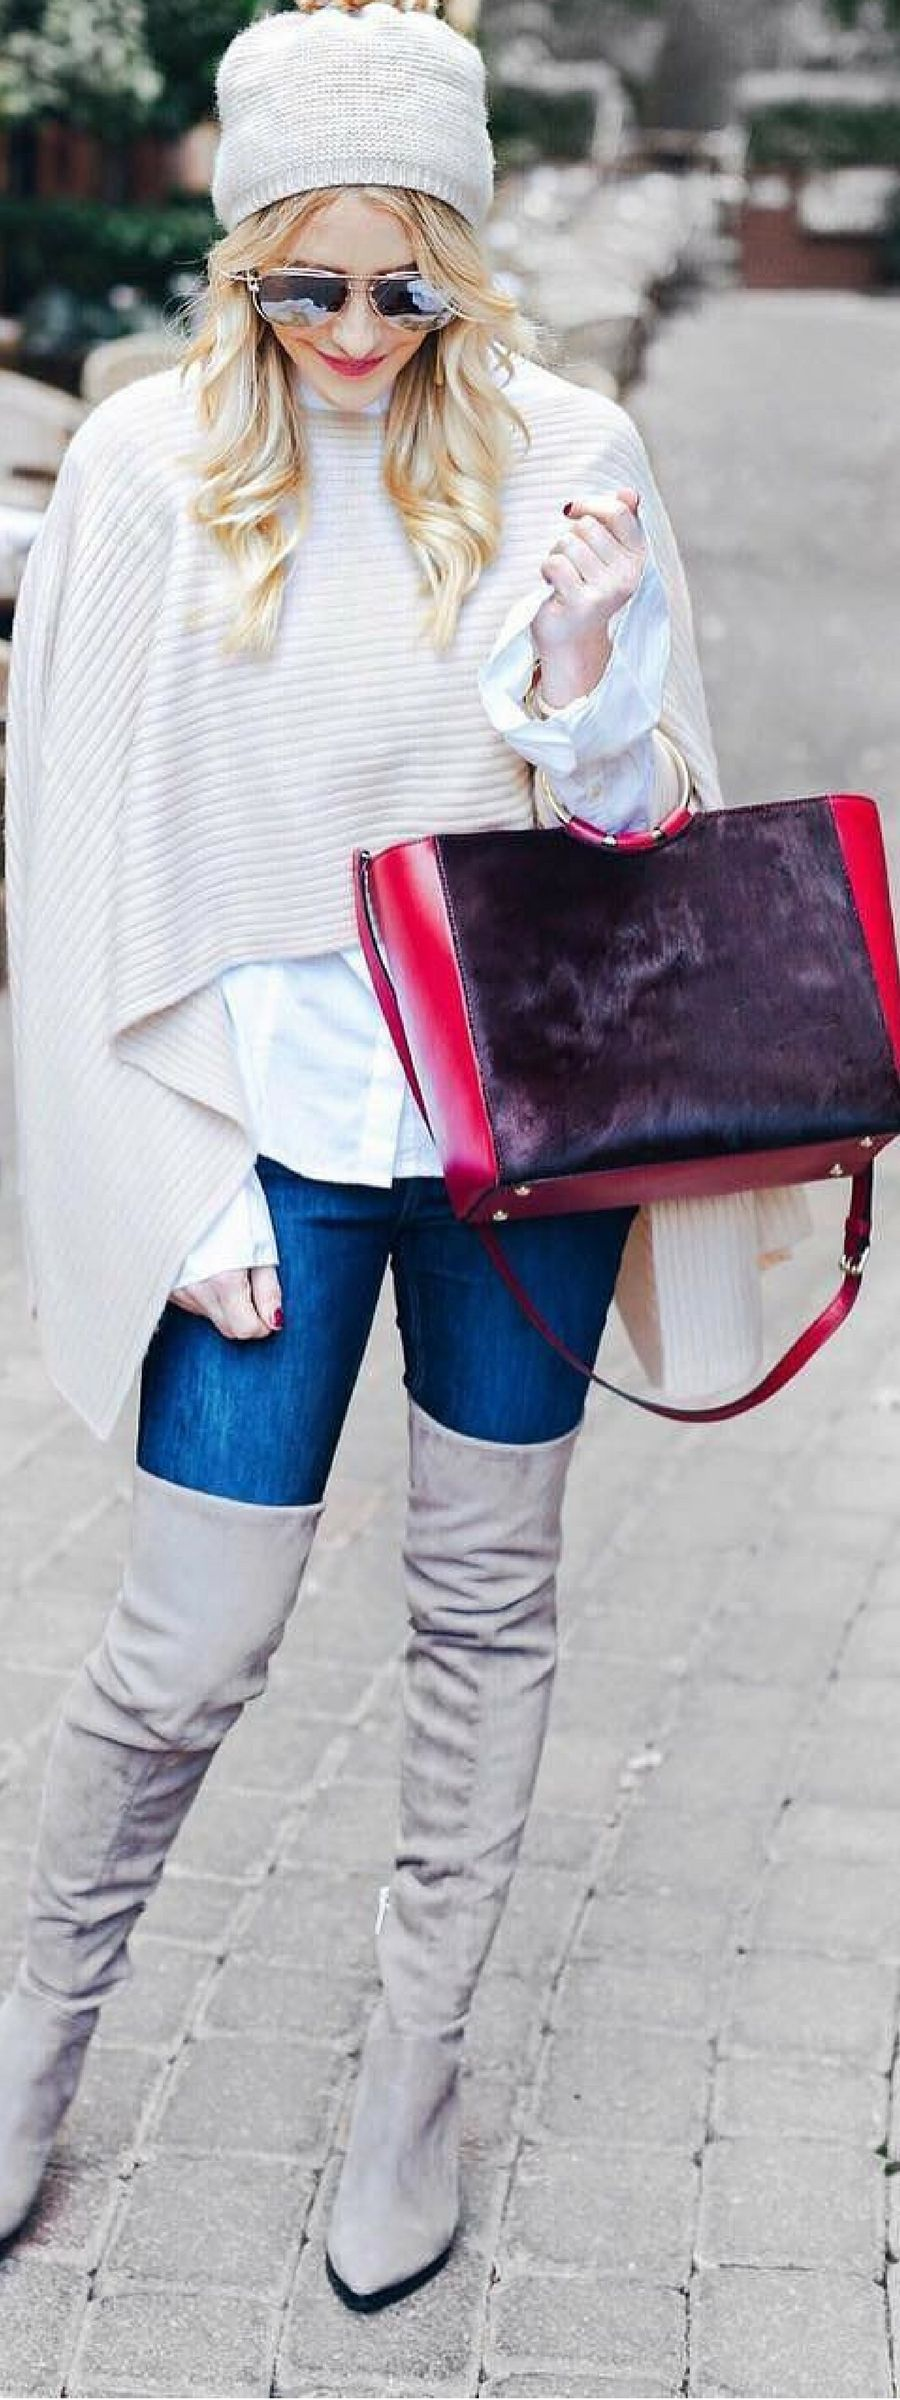 14 Warm Winter Outfits for Winter 14 Warm Winter Outfits for Winter new picture